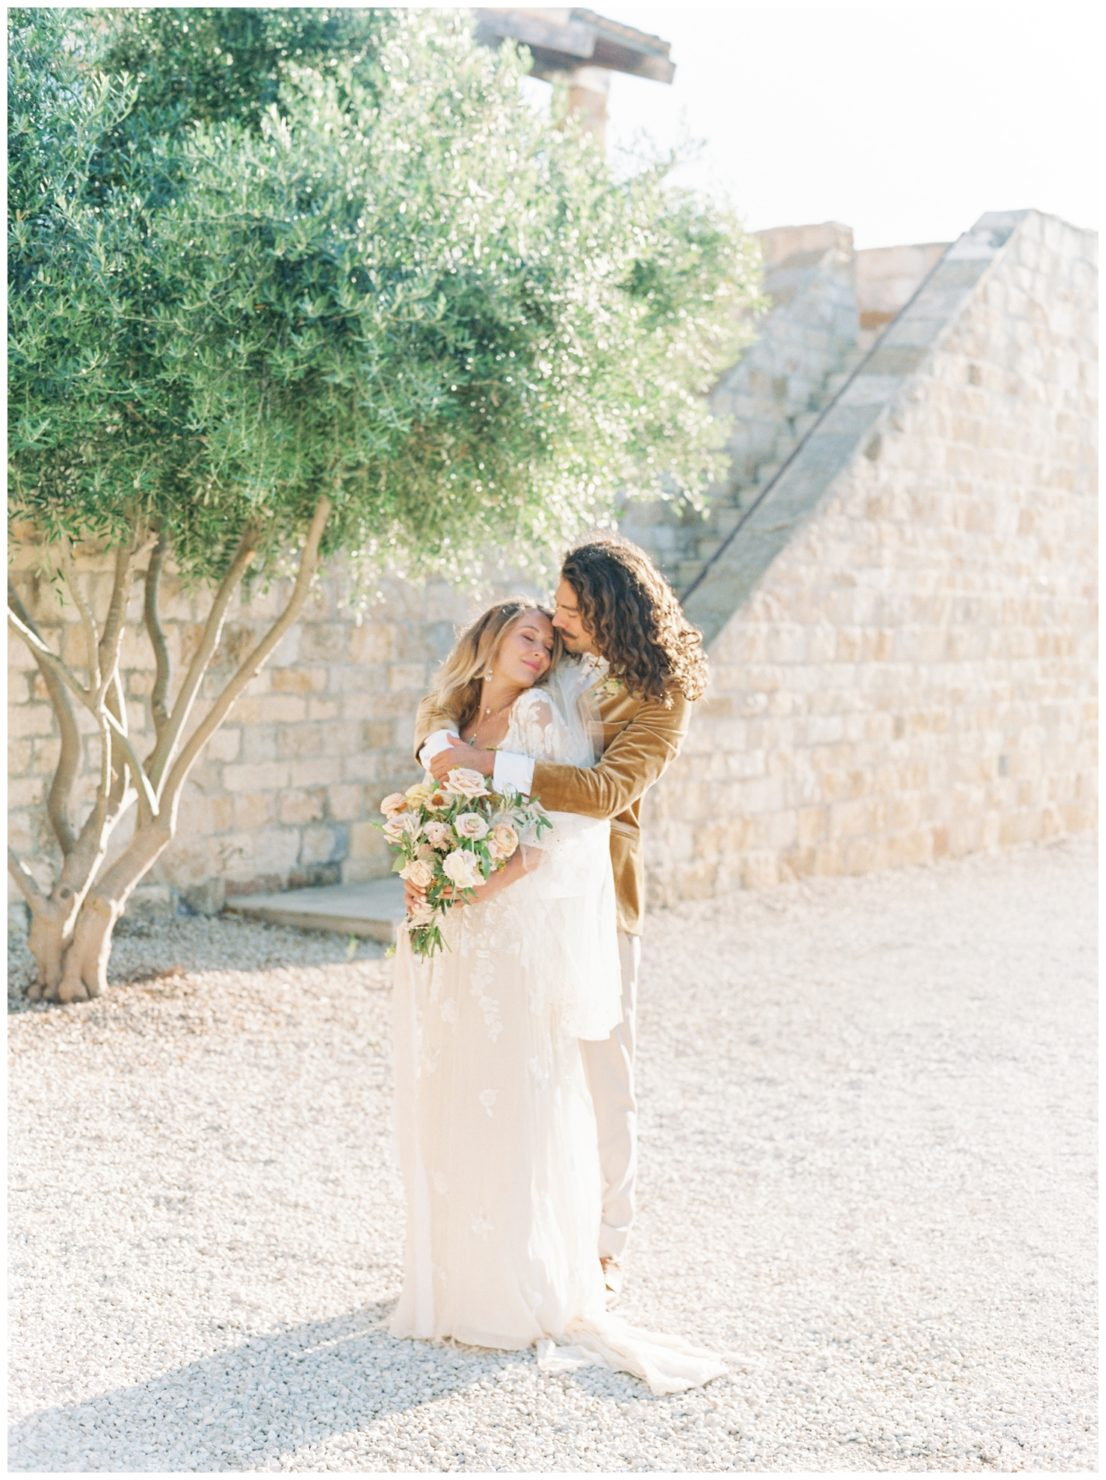 Stylish And Summery Wedding At A Winery In Greece Couple Portrait